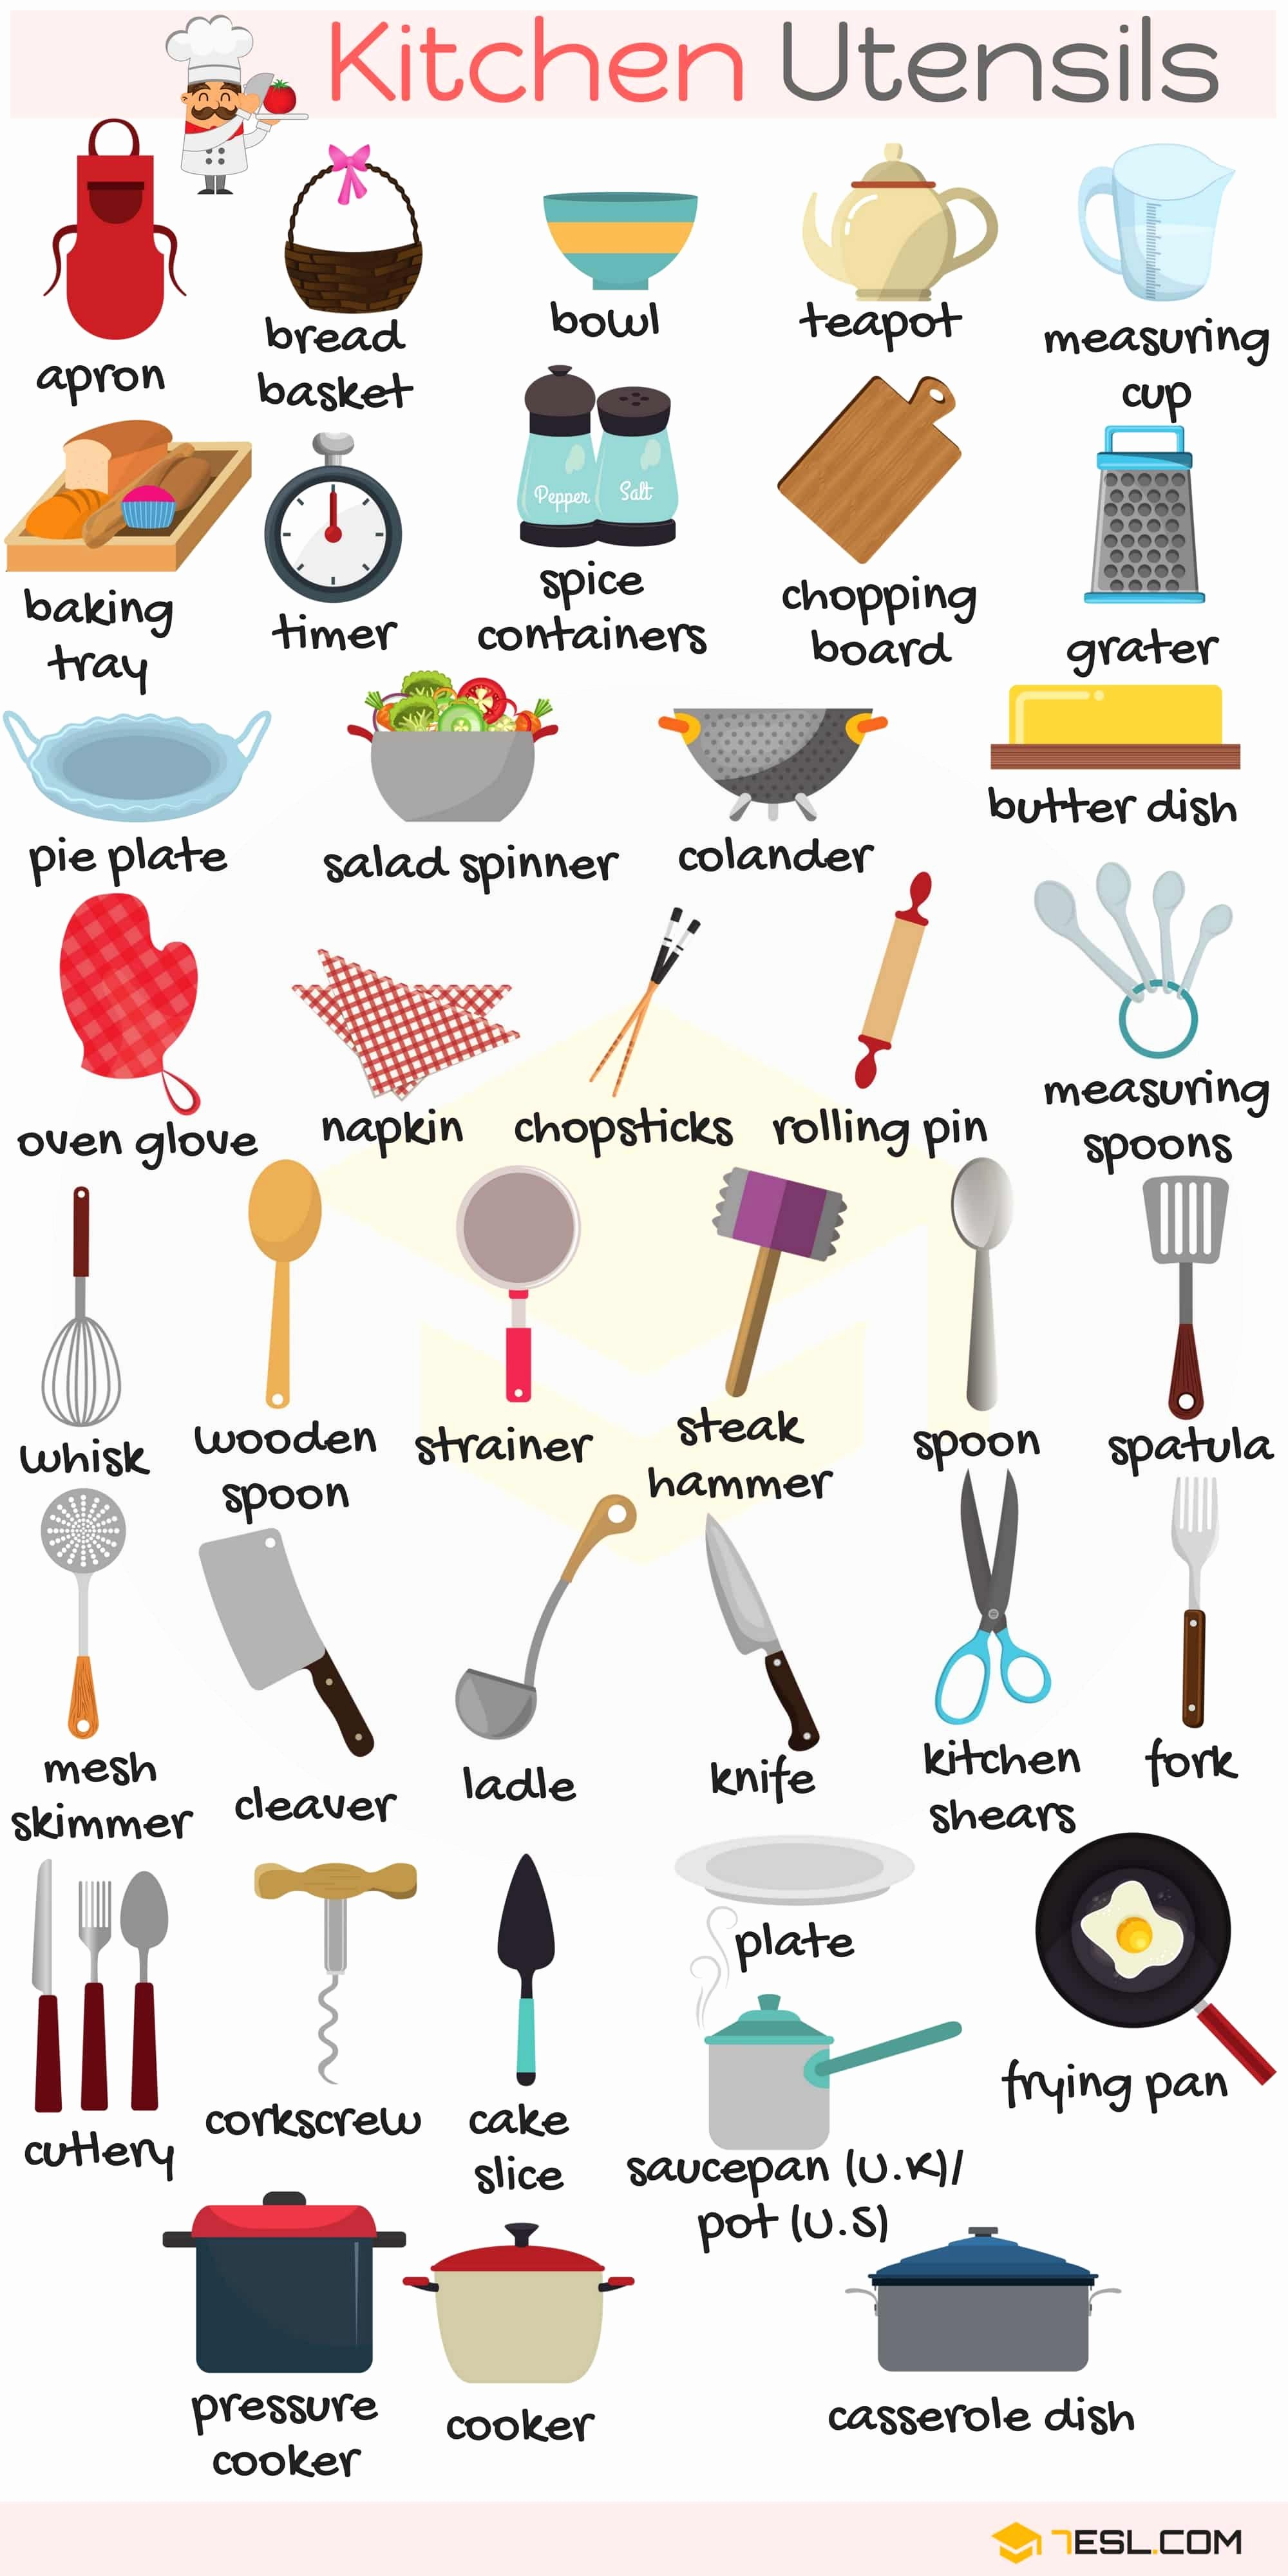 Basic Cooking Terms Worksheet New Kitchen Utensils List Of Essential Kitchen tools with